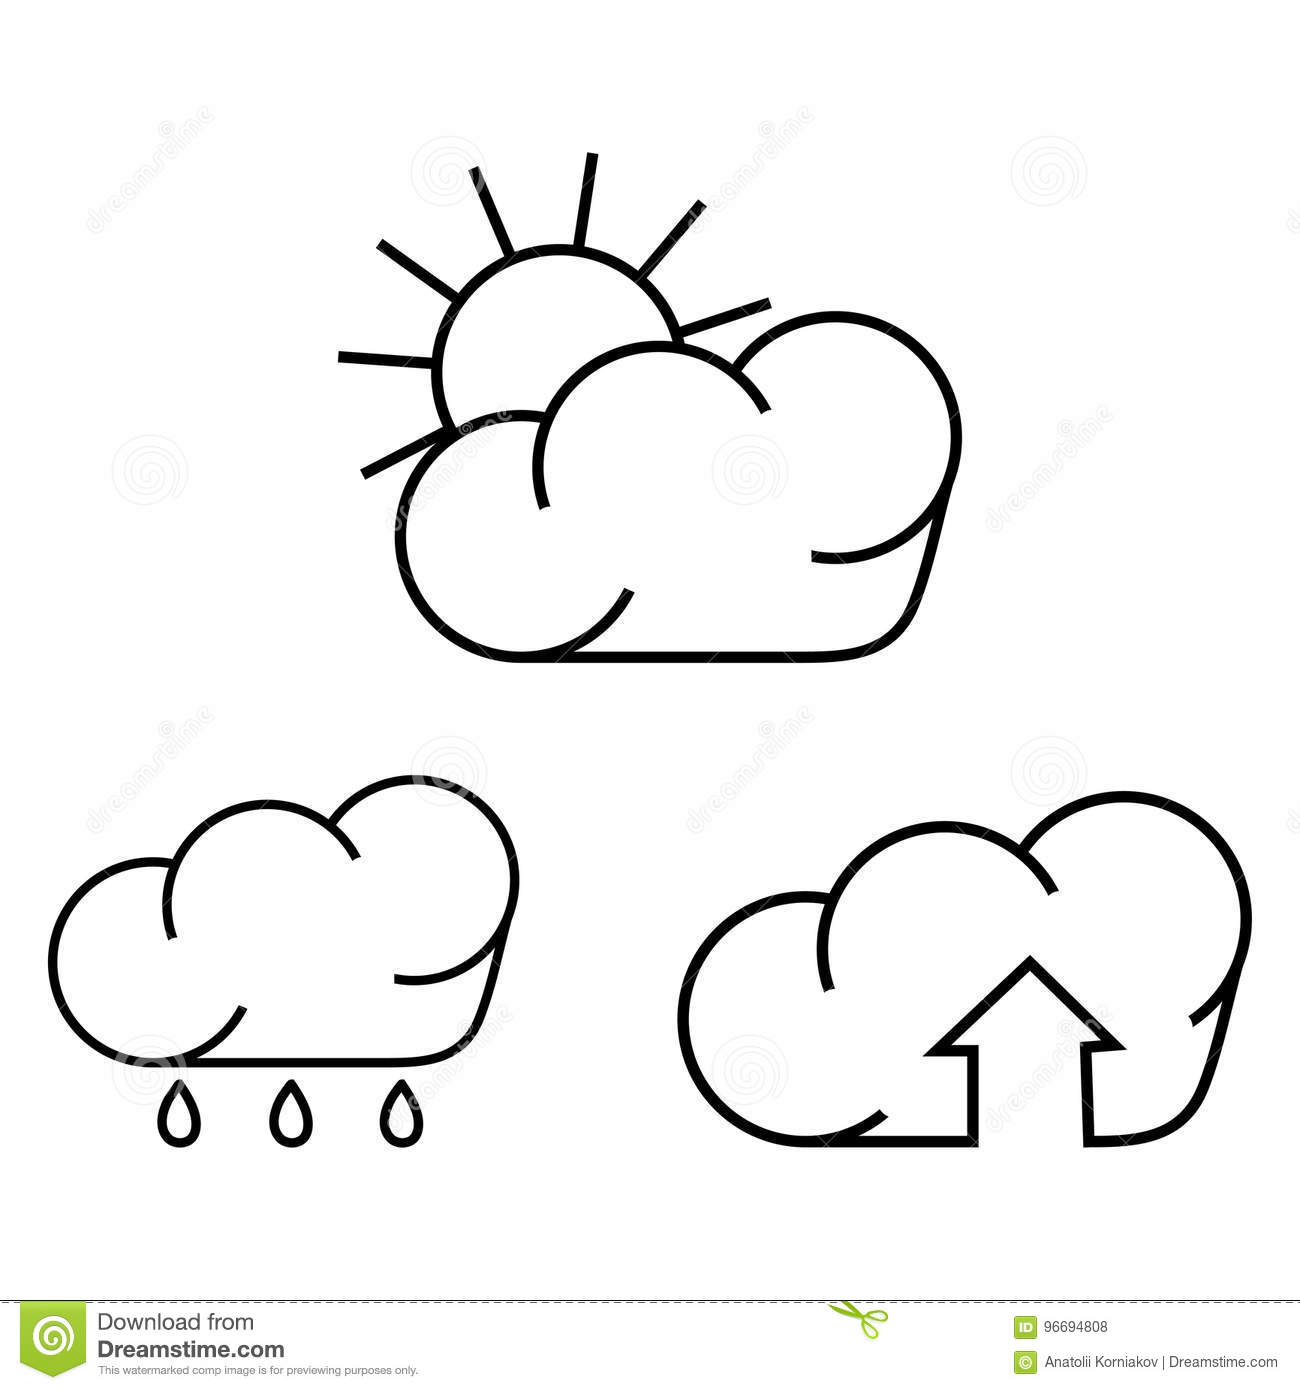 Symbols For Rain And Sun Stock Vector Illustration Of Cloud 96694808